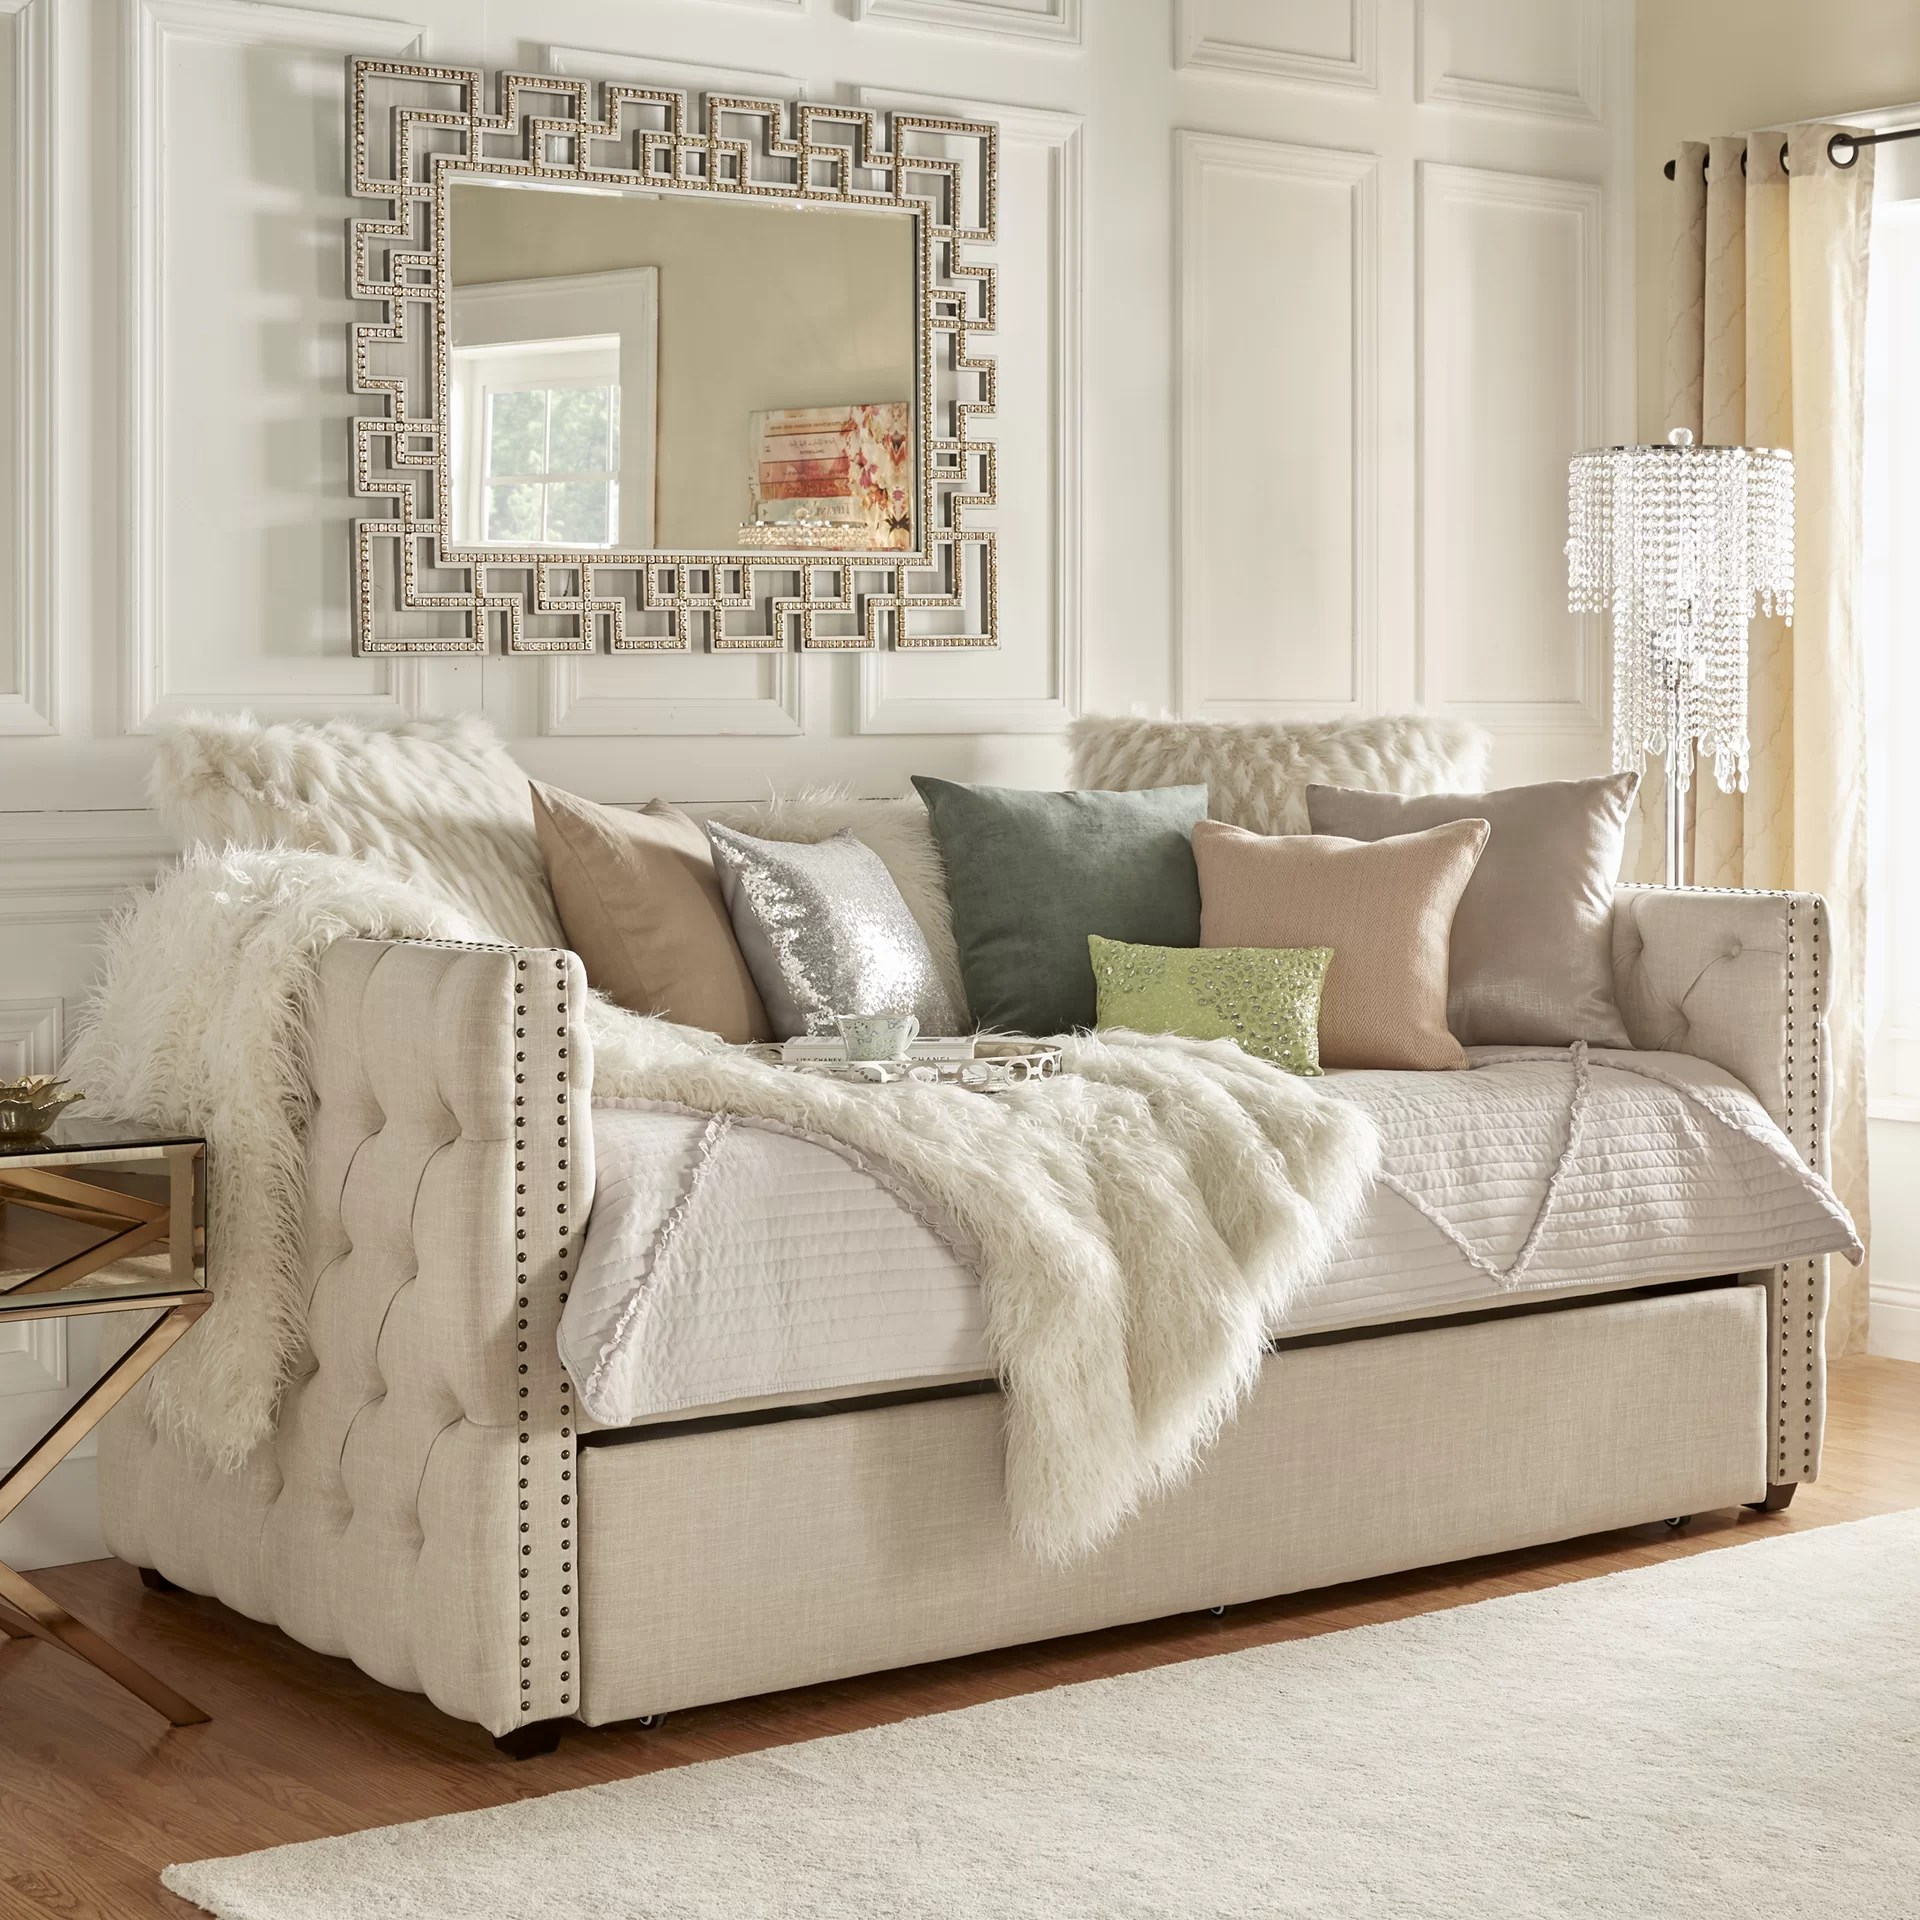 Day Bed Trundle Bed House Of Hampton Ghislain Daybed With Trundle And Reviews